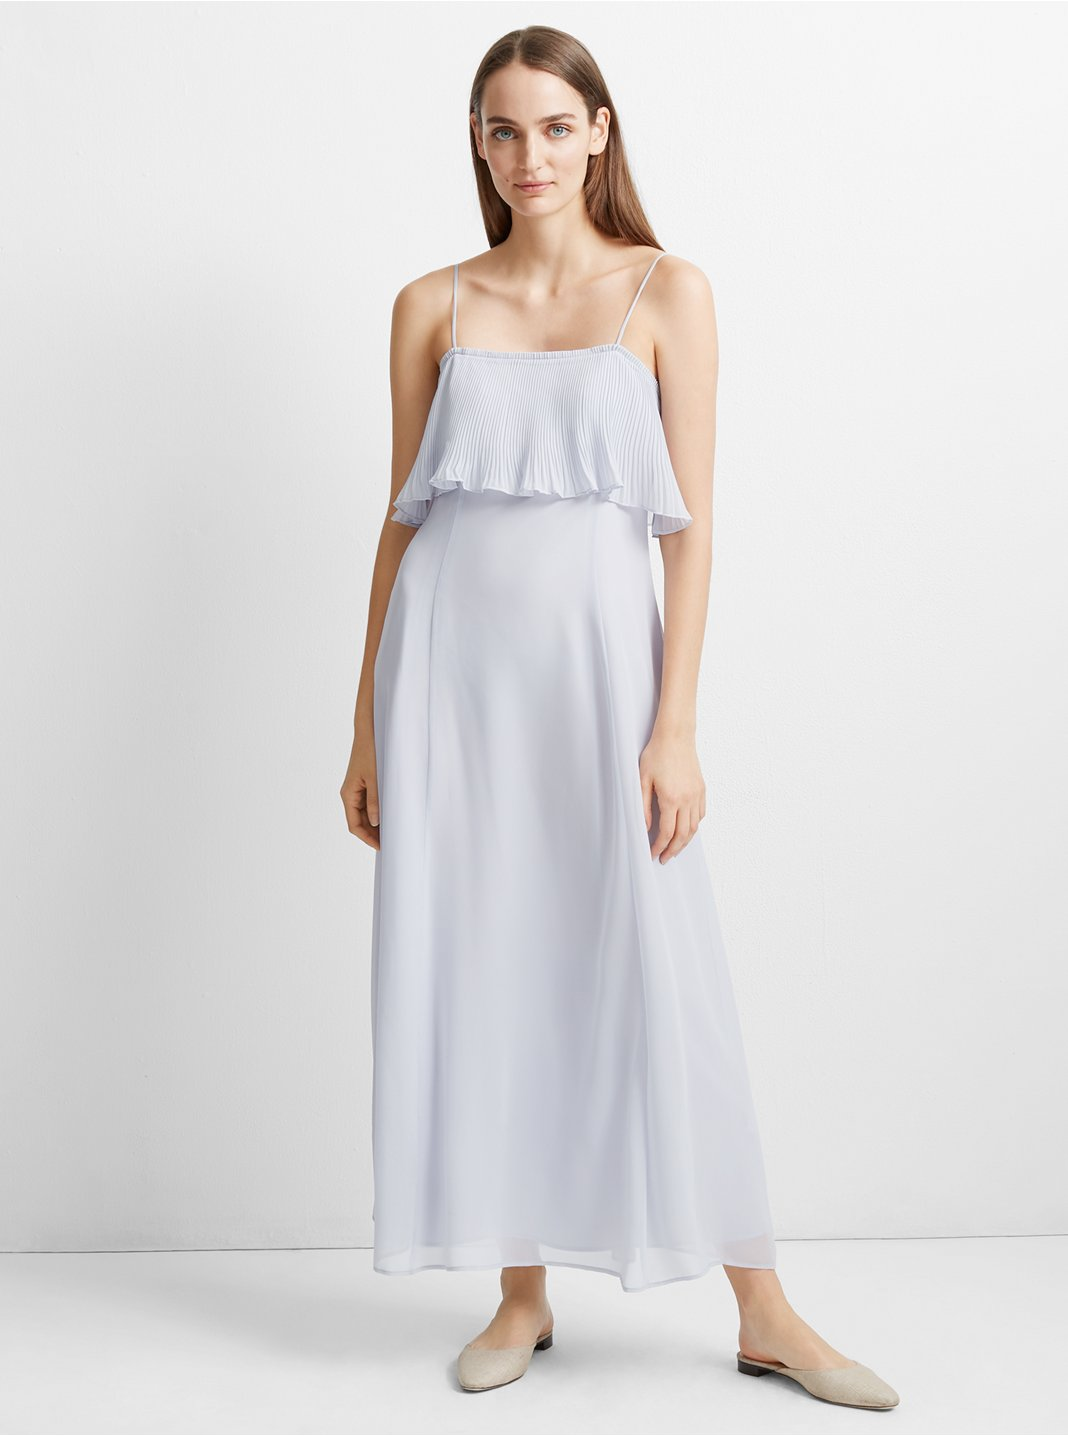 76e45c365 Womens Dresses | Club Monaco